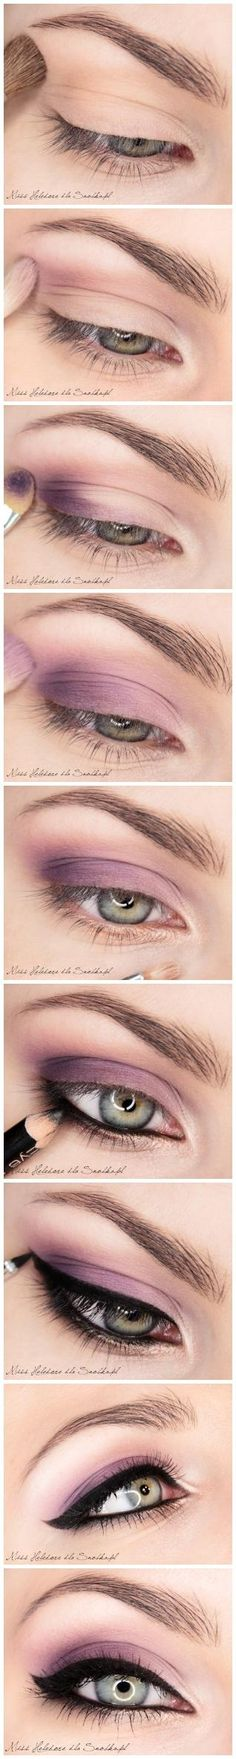 eyeliner + purple eye shadow #Makeup how-to